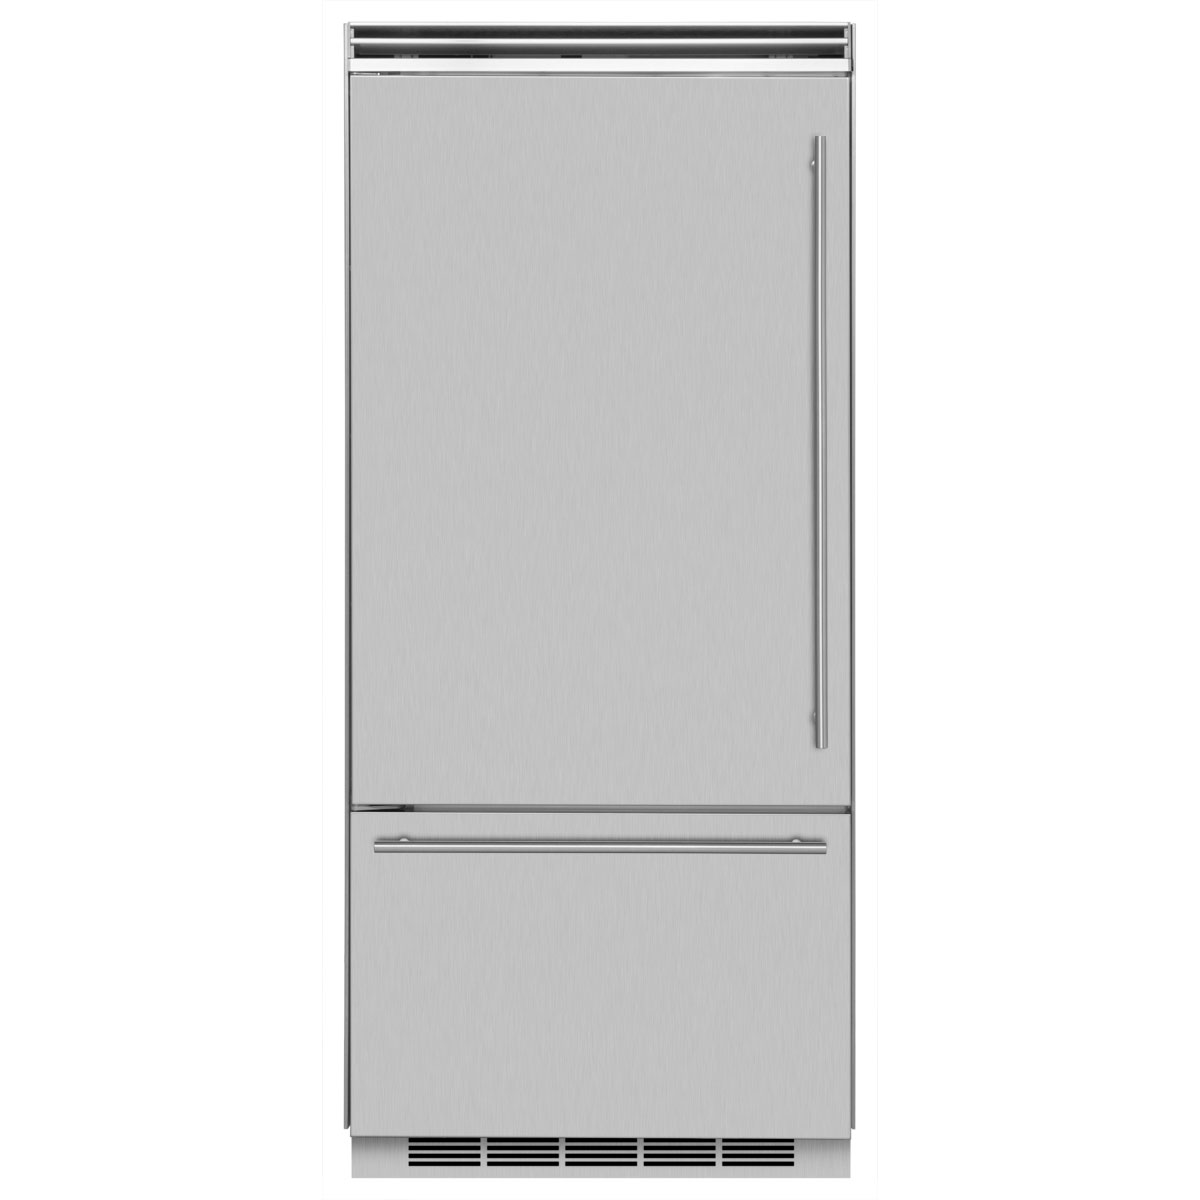 "Marvel  Marvel Professional Built-In 36"" Bottom Freezer Refrigerator- Optional Accessories Professional Handle  Horizontal Freezer Door Installation (qty 1)"